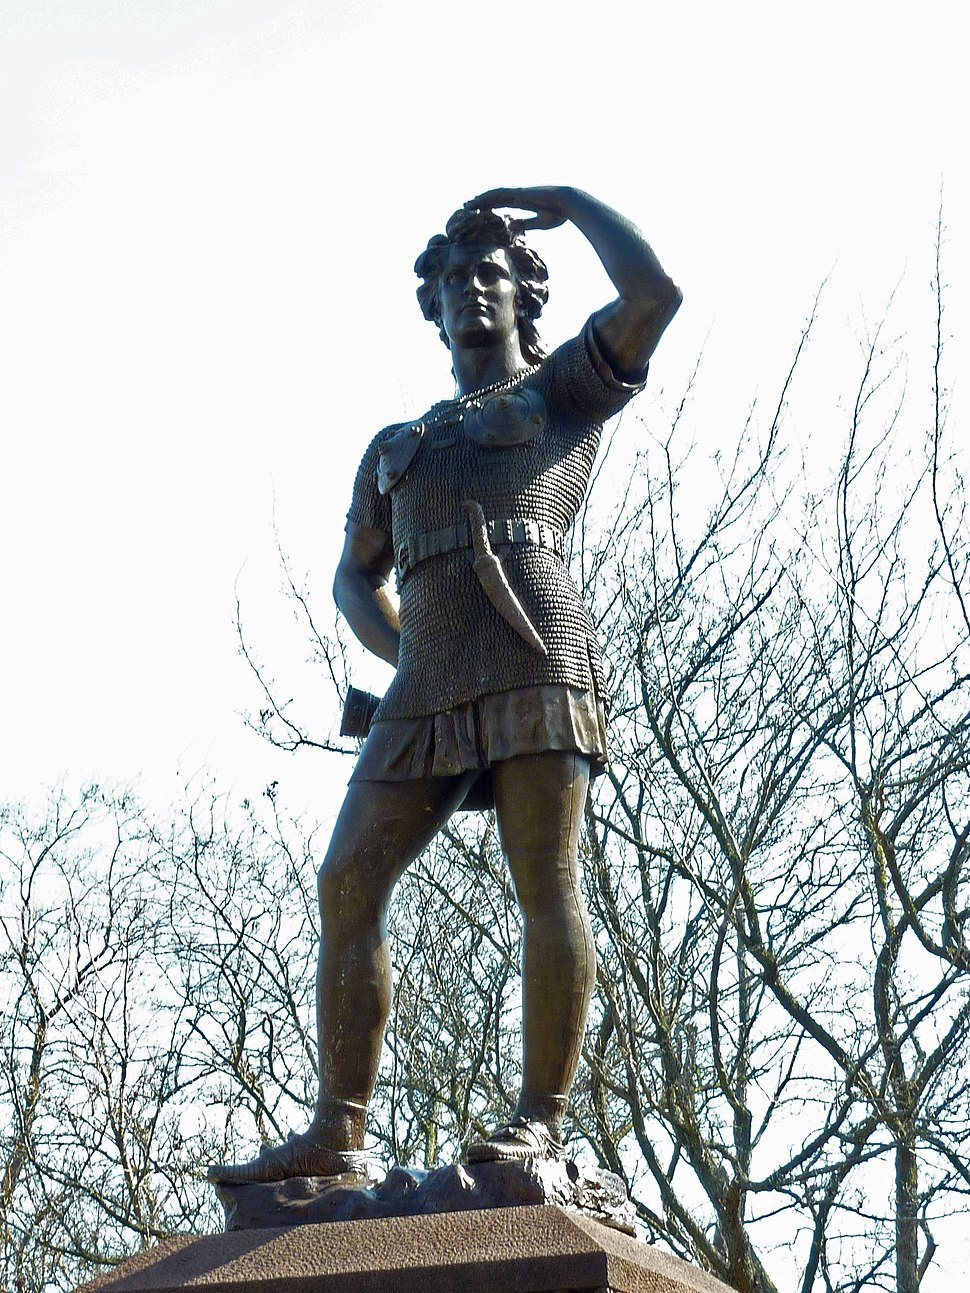 Leif Ericson statue in Milwaukee